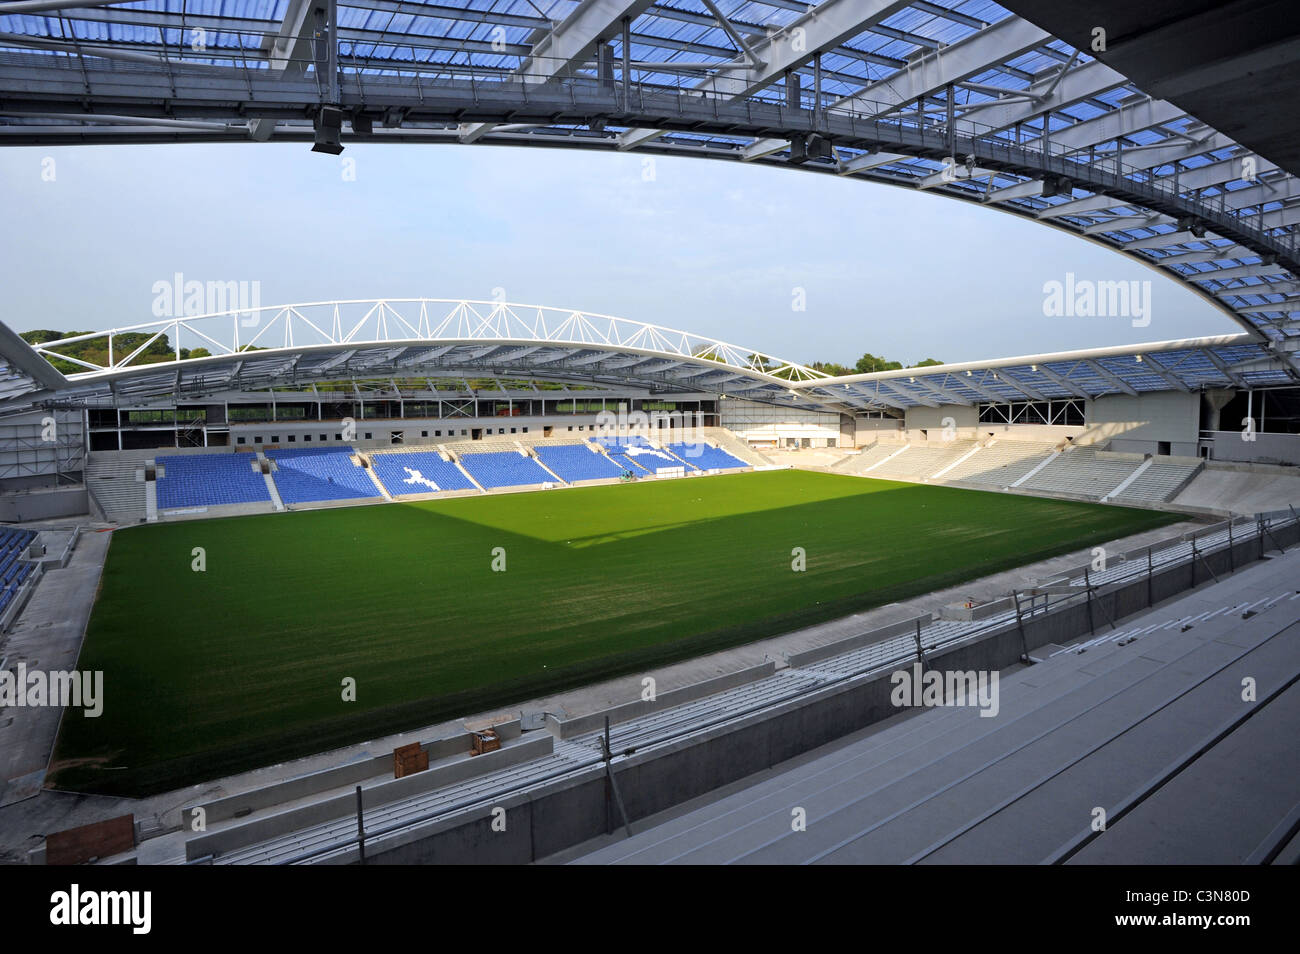 Brighton and Hove Albion's new Football Stadium called the American Express Community Stadium or The Amex - Stock Image